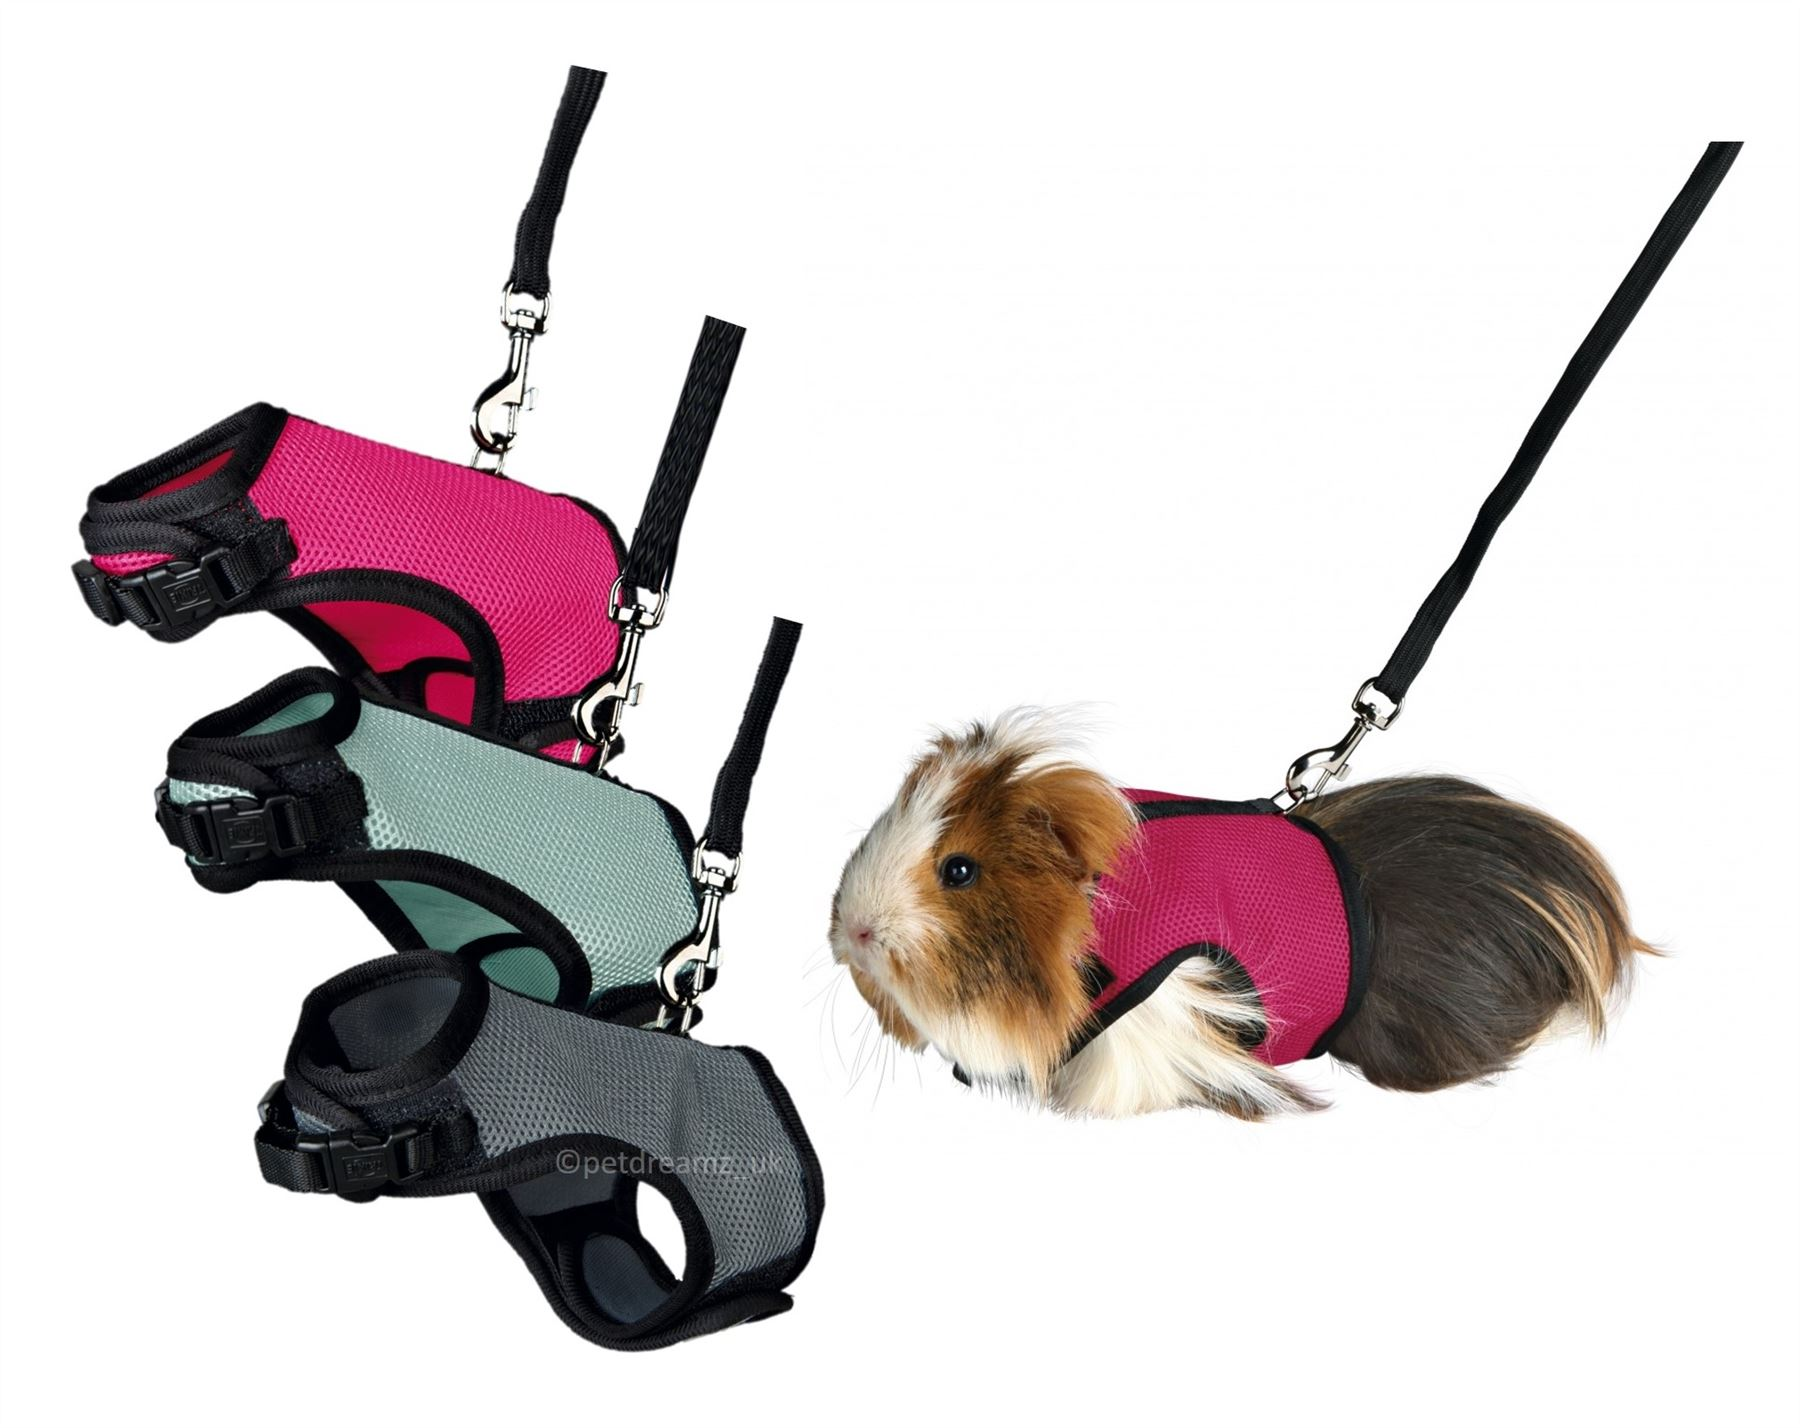 Trixie soft breathable pet rat ferret guinea pig rabbit harness trixie soft breathable pet rat ferret guinea pig publicscrutiny Gallery